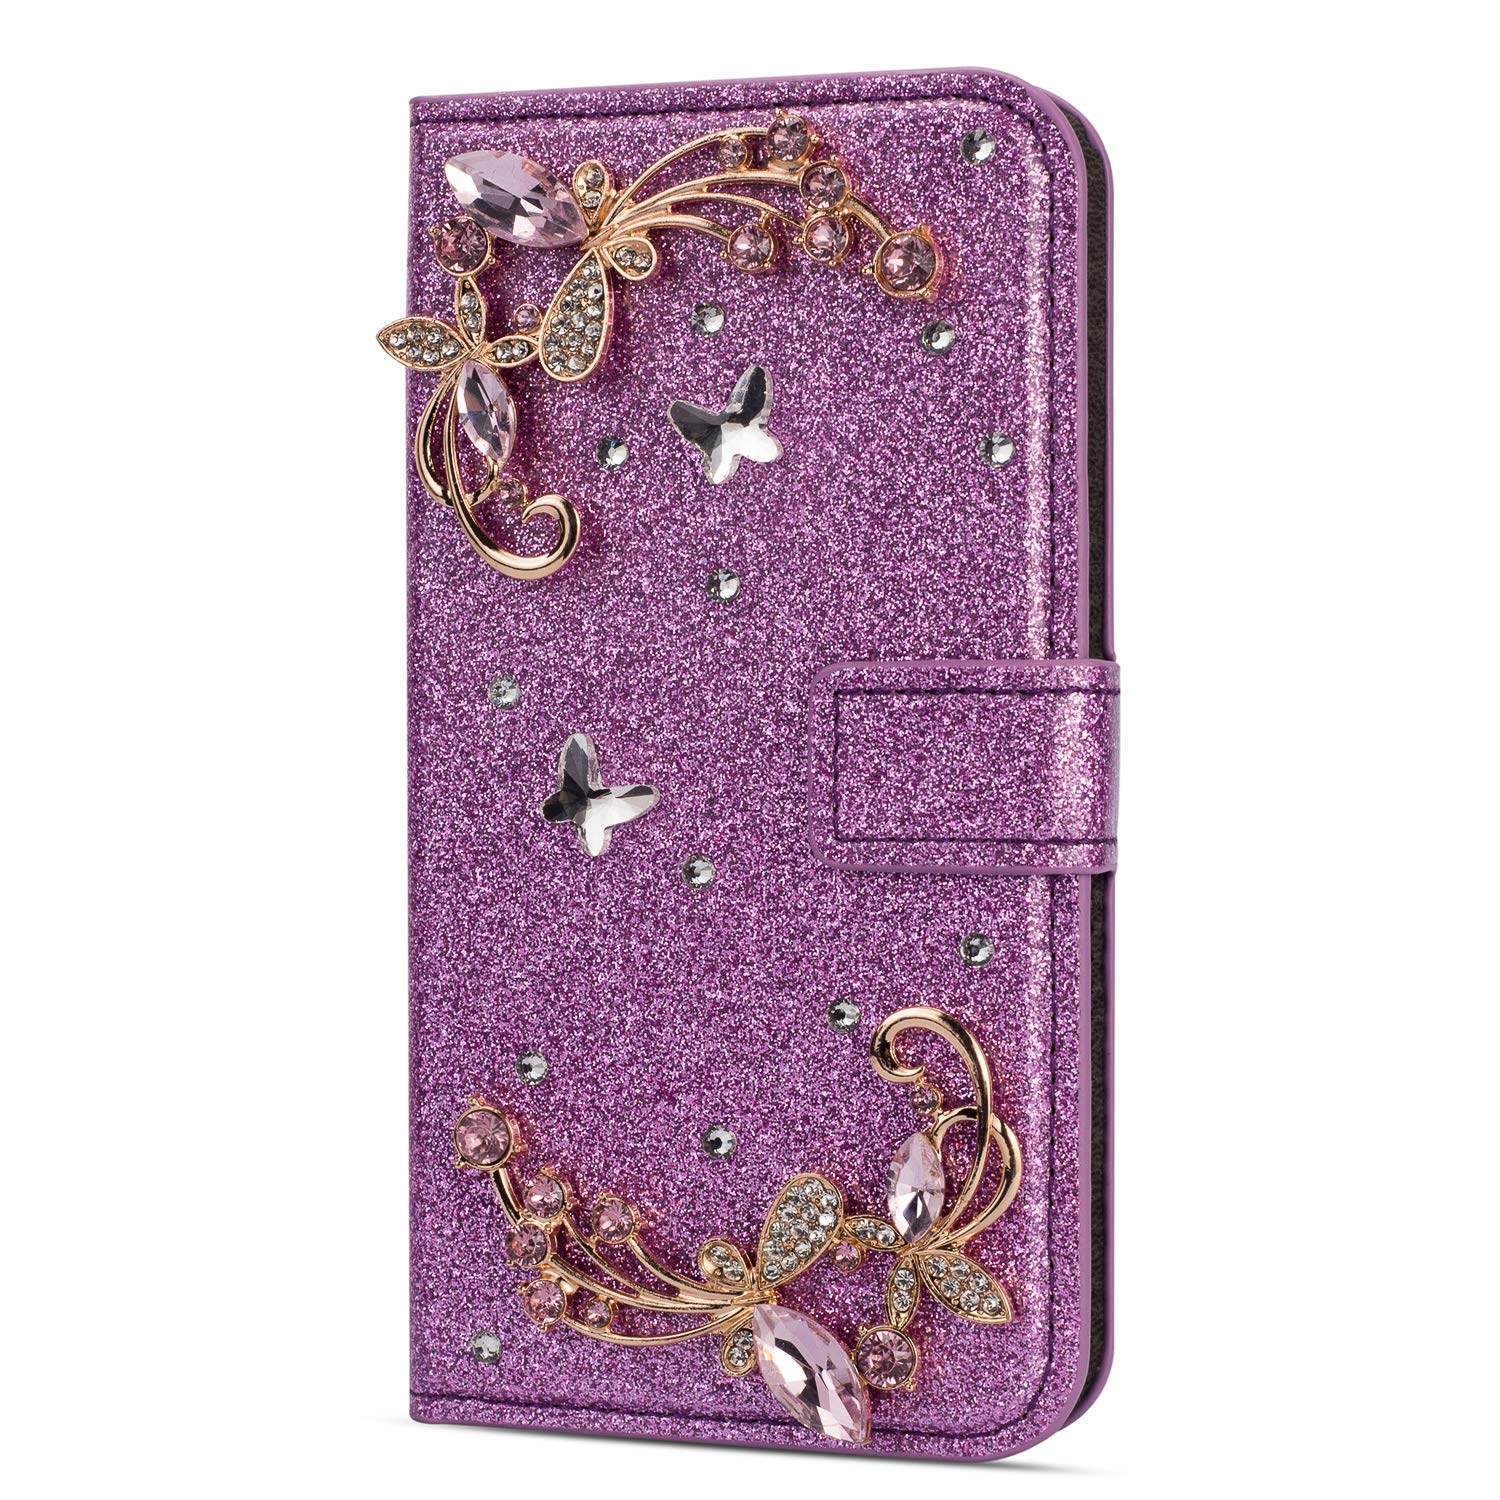 Amocase Glitter Case with 2 in 1 Stylus for iPhone SE,Luxury Diamond 3D Crystal Butterfly Flower Magnetic Wallet Soft PU Leather Stand Shockproof Case for iPhone SE/5/5S - Purple by Amocase